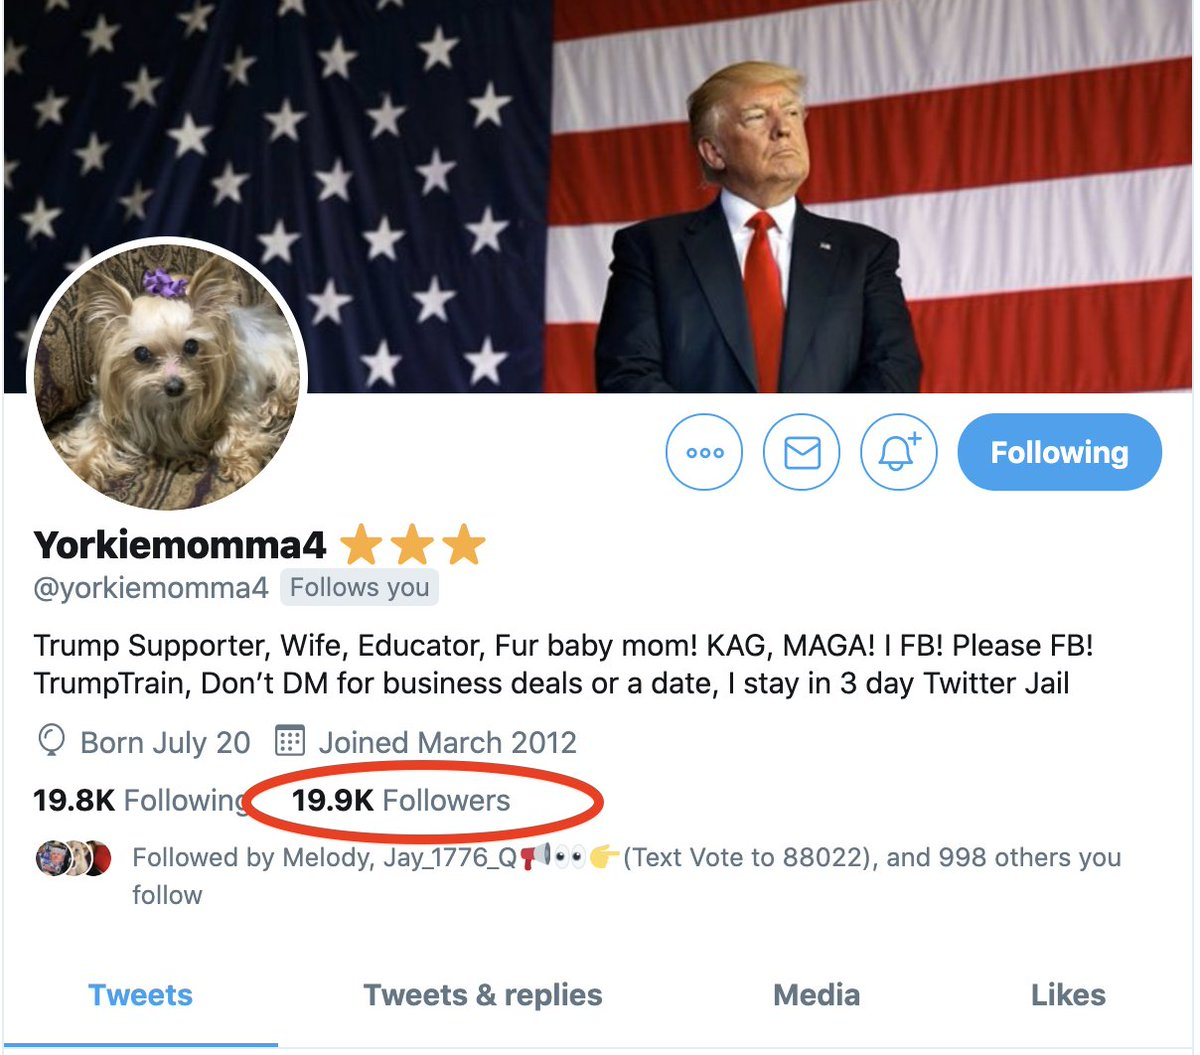 🔥⚔️🇺🇸🔥⚔️🇺🇸🔥⚔️🇺🇸🔥⚔️🇺🇸🔥⚔️🇺🇸🔥 ATTENTION Warriors: This amazing wonderful friend and patriot is coming up on 20K. If you arent following her you are truly missing out. Give her a follow @yorkiemomma4